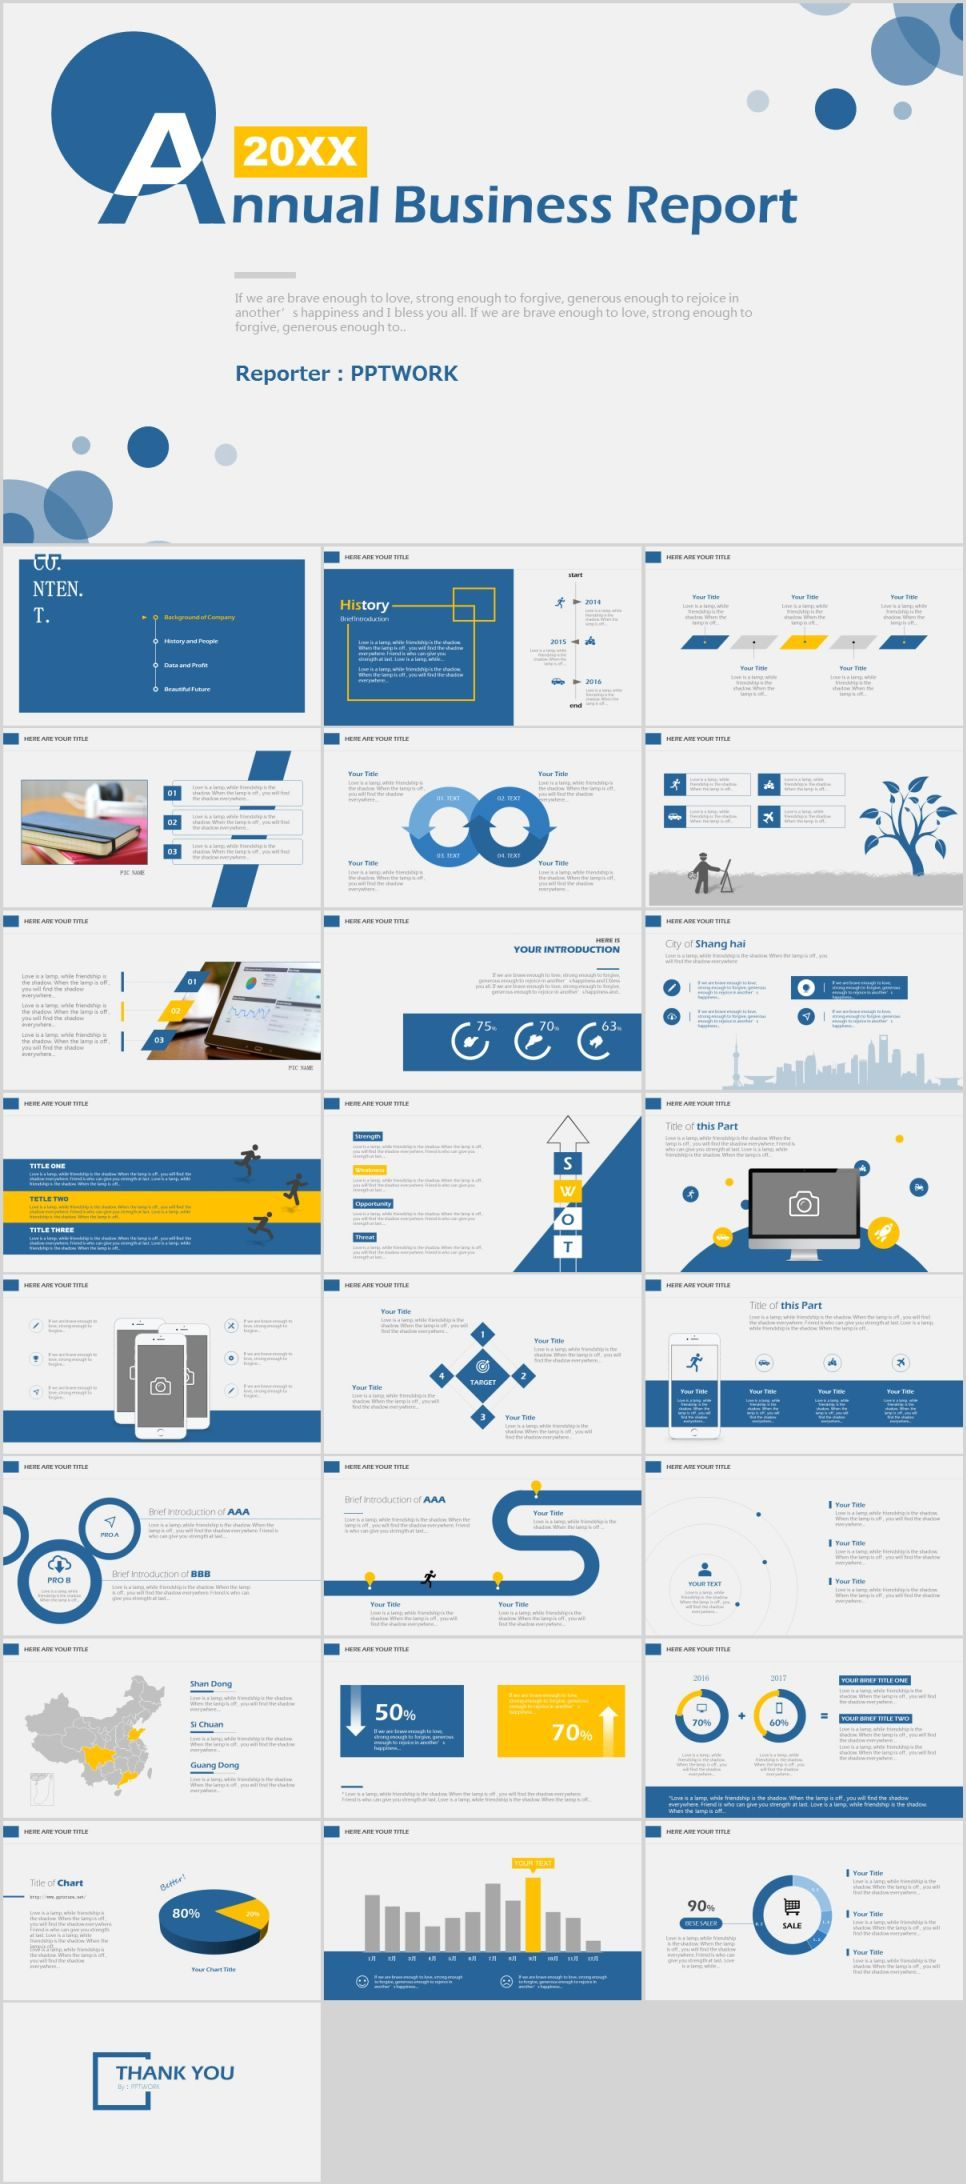 26 annual business report powerpoint template business company 26 annual business report powerpoint template the highest quality powerpoint templates and keynote templates download friedricerecipe Gallery